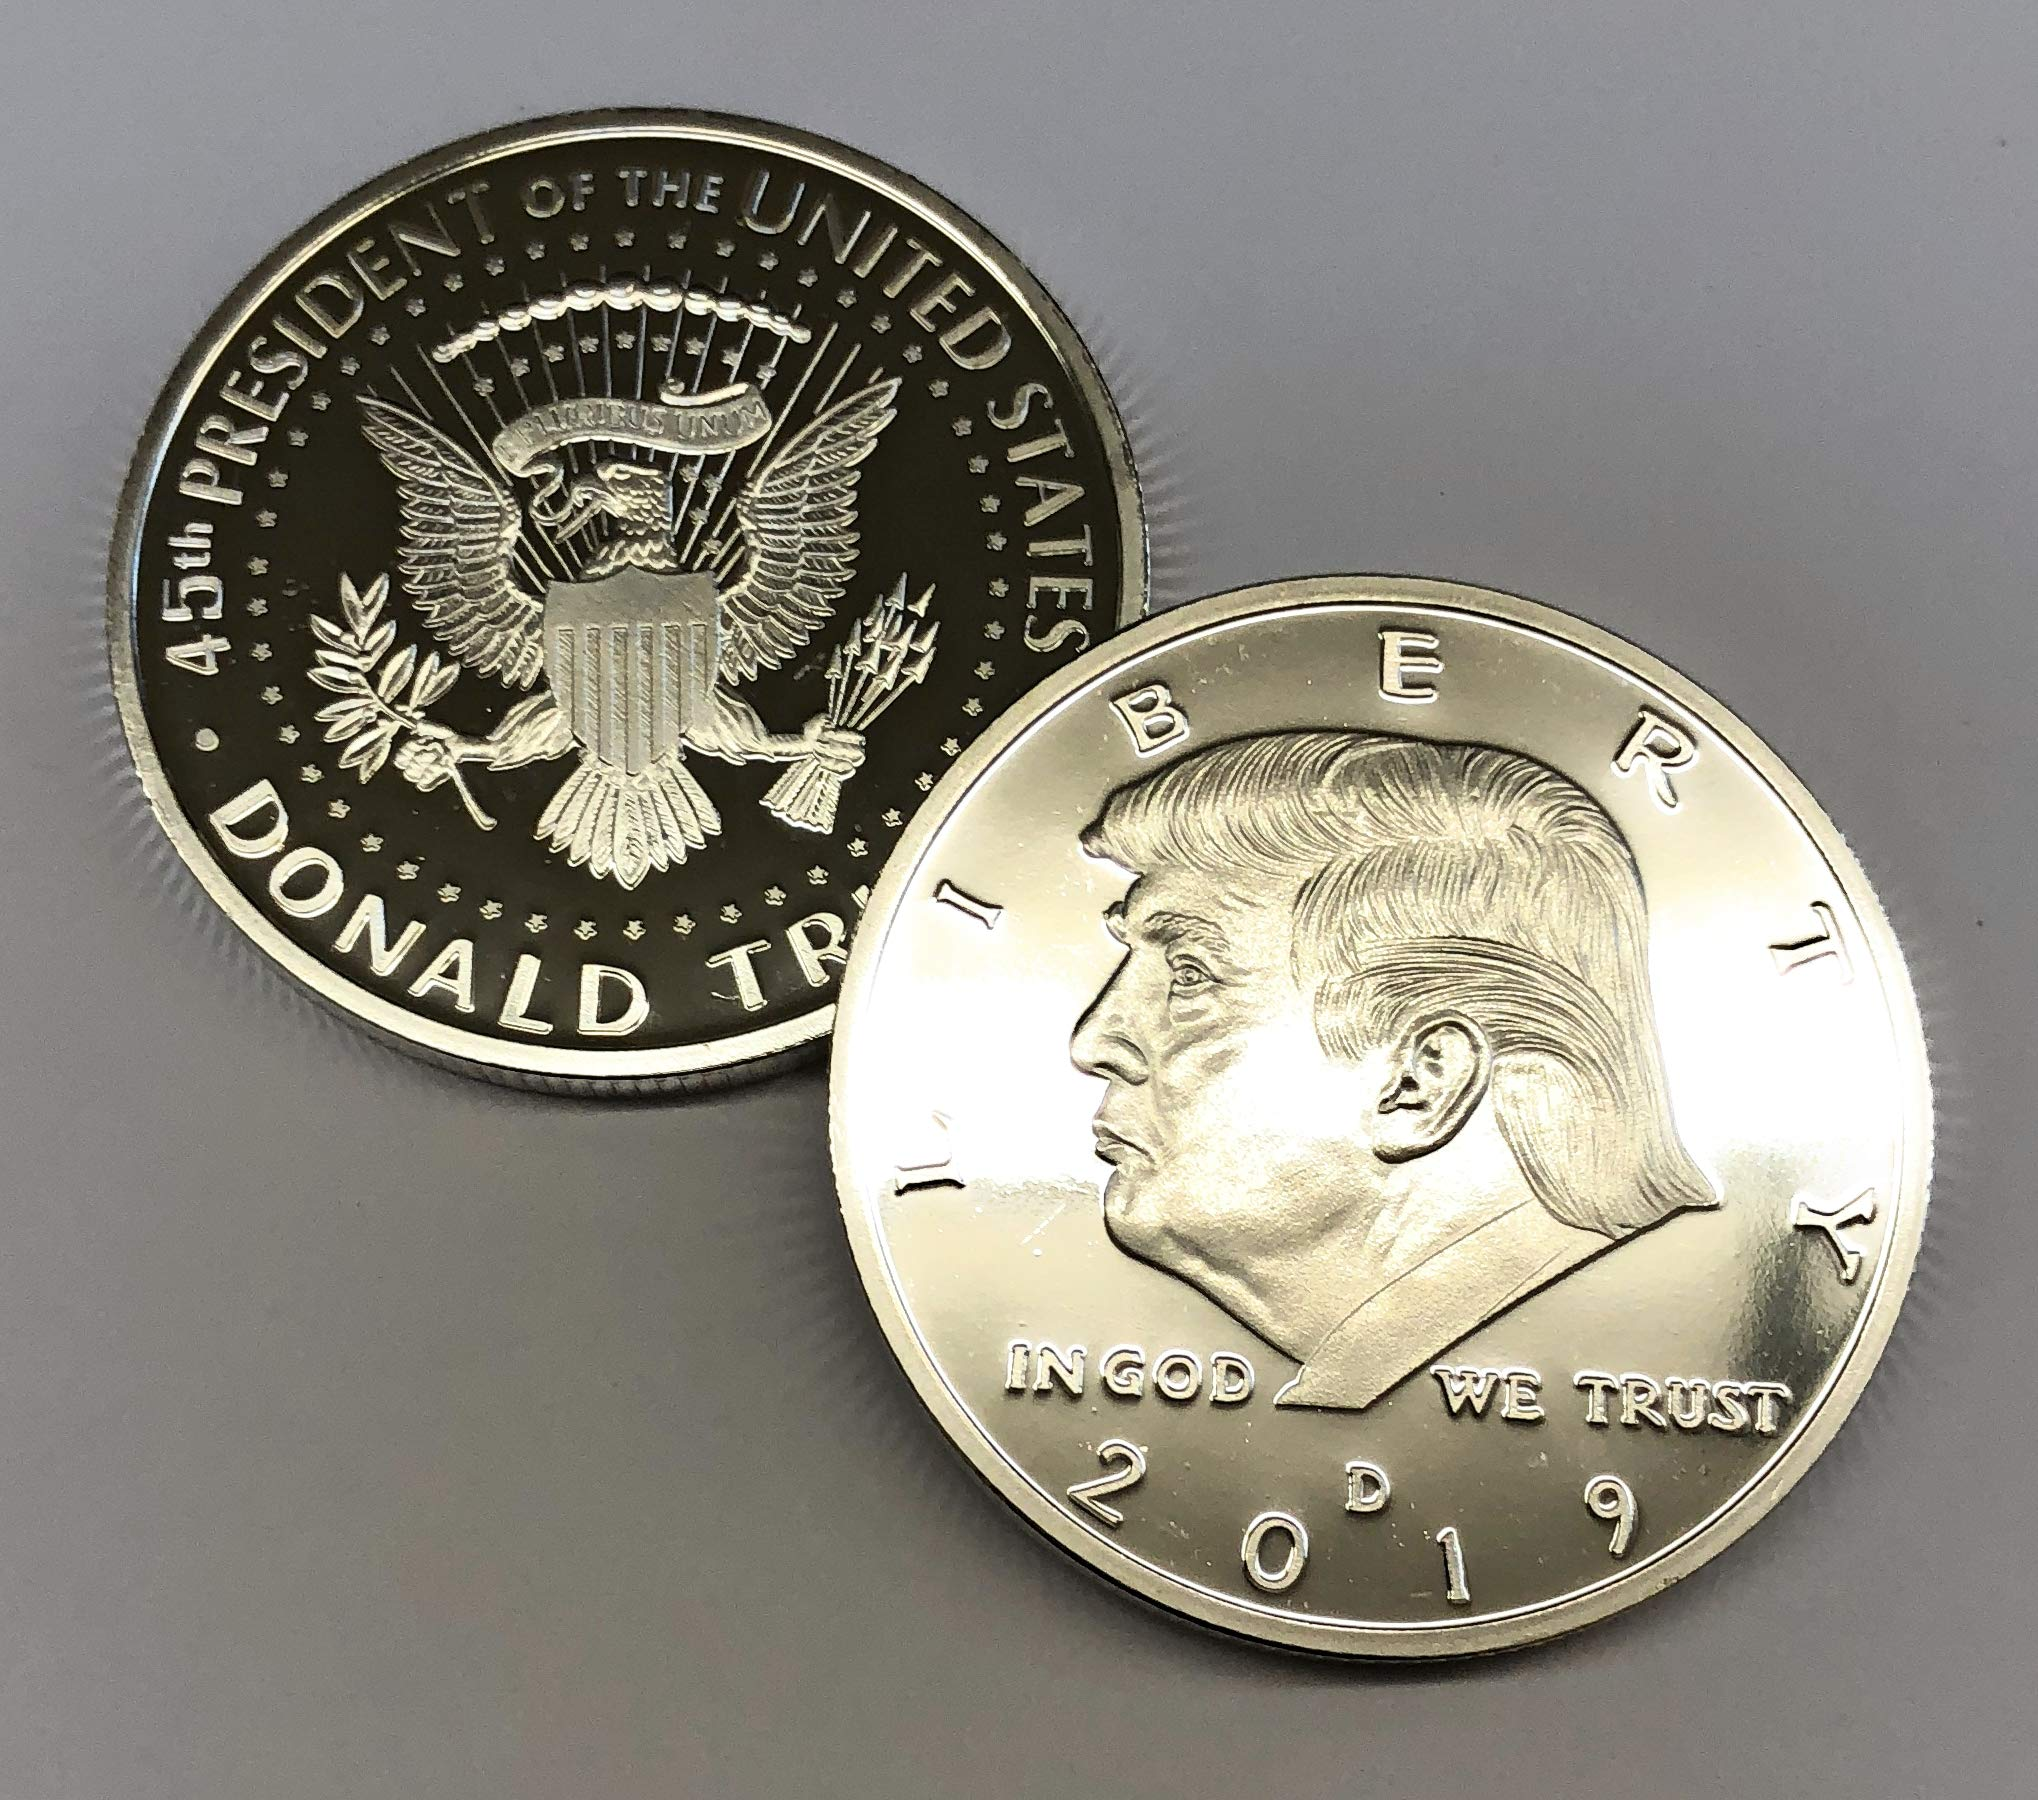 Aizics Mint Trump Coin; 2019 Donald Trump Large Silver Plated United States Eagle Commemorative Collectible Coin Certificate of Authenticity Original Design